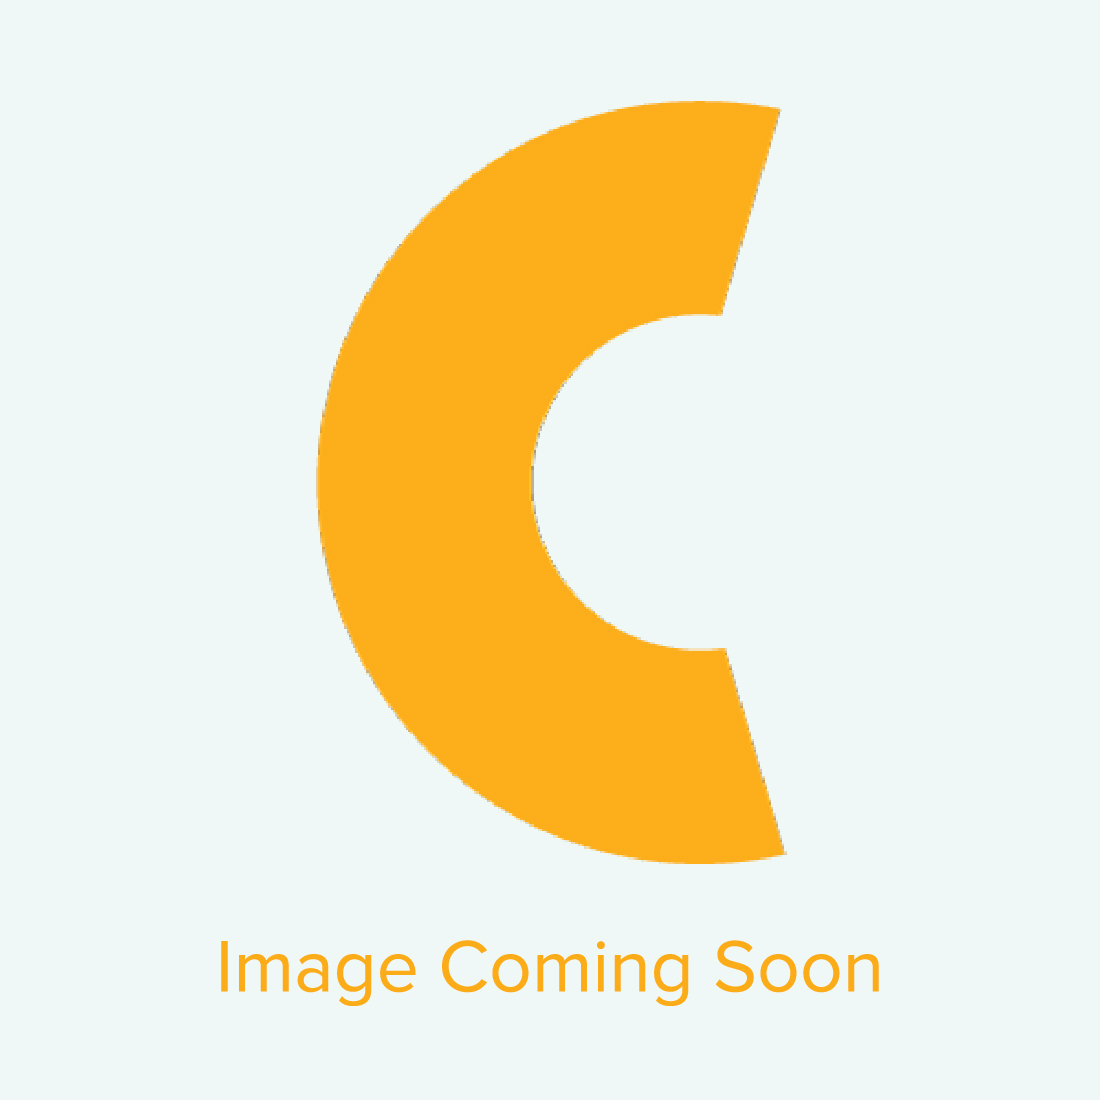 Graphtec CE6000 Series Protection Plan